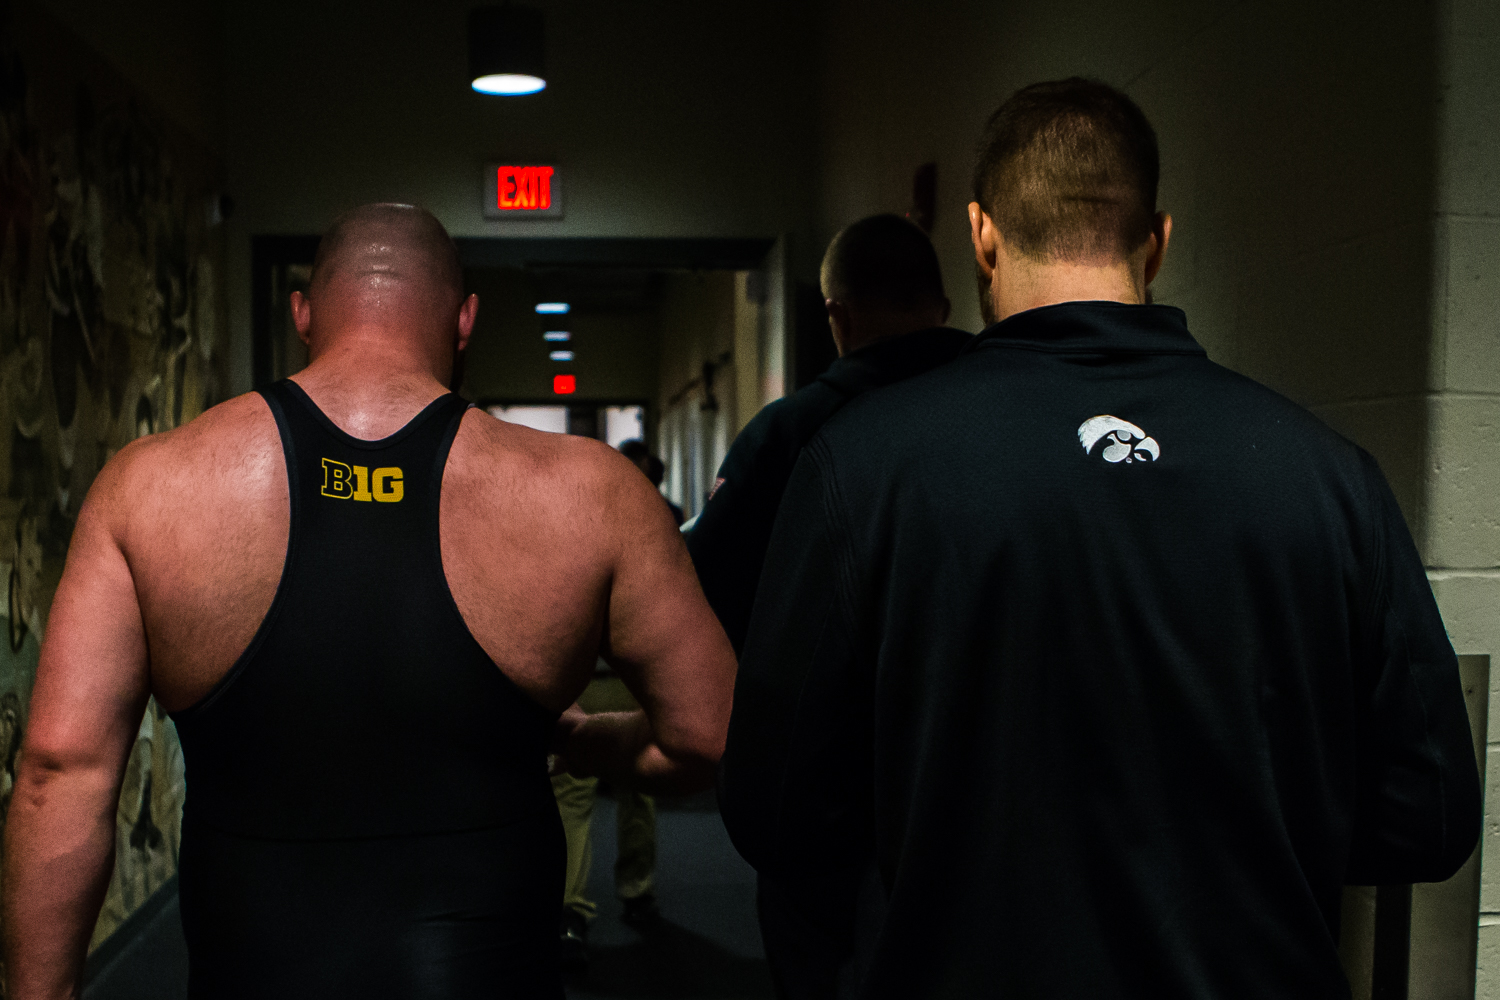 Iowa%E2%80%99s+285-pound+Sam+Stoll+walks+to+the+locker+room+during+the+second+session+of+the+2019+NCAA+D1+Wrestling+Championships+at+PPG+Paints+Arena+in+Pittsburgh%2C+PA+on+Thursday%2C+March+21%2C+2019.+Stoll+won+by+decision%2C+1-0.